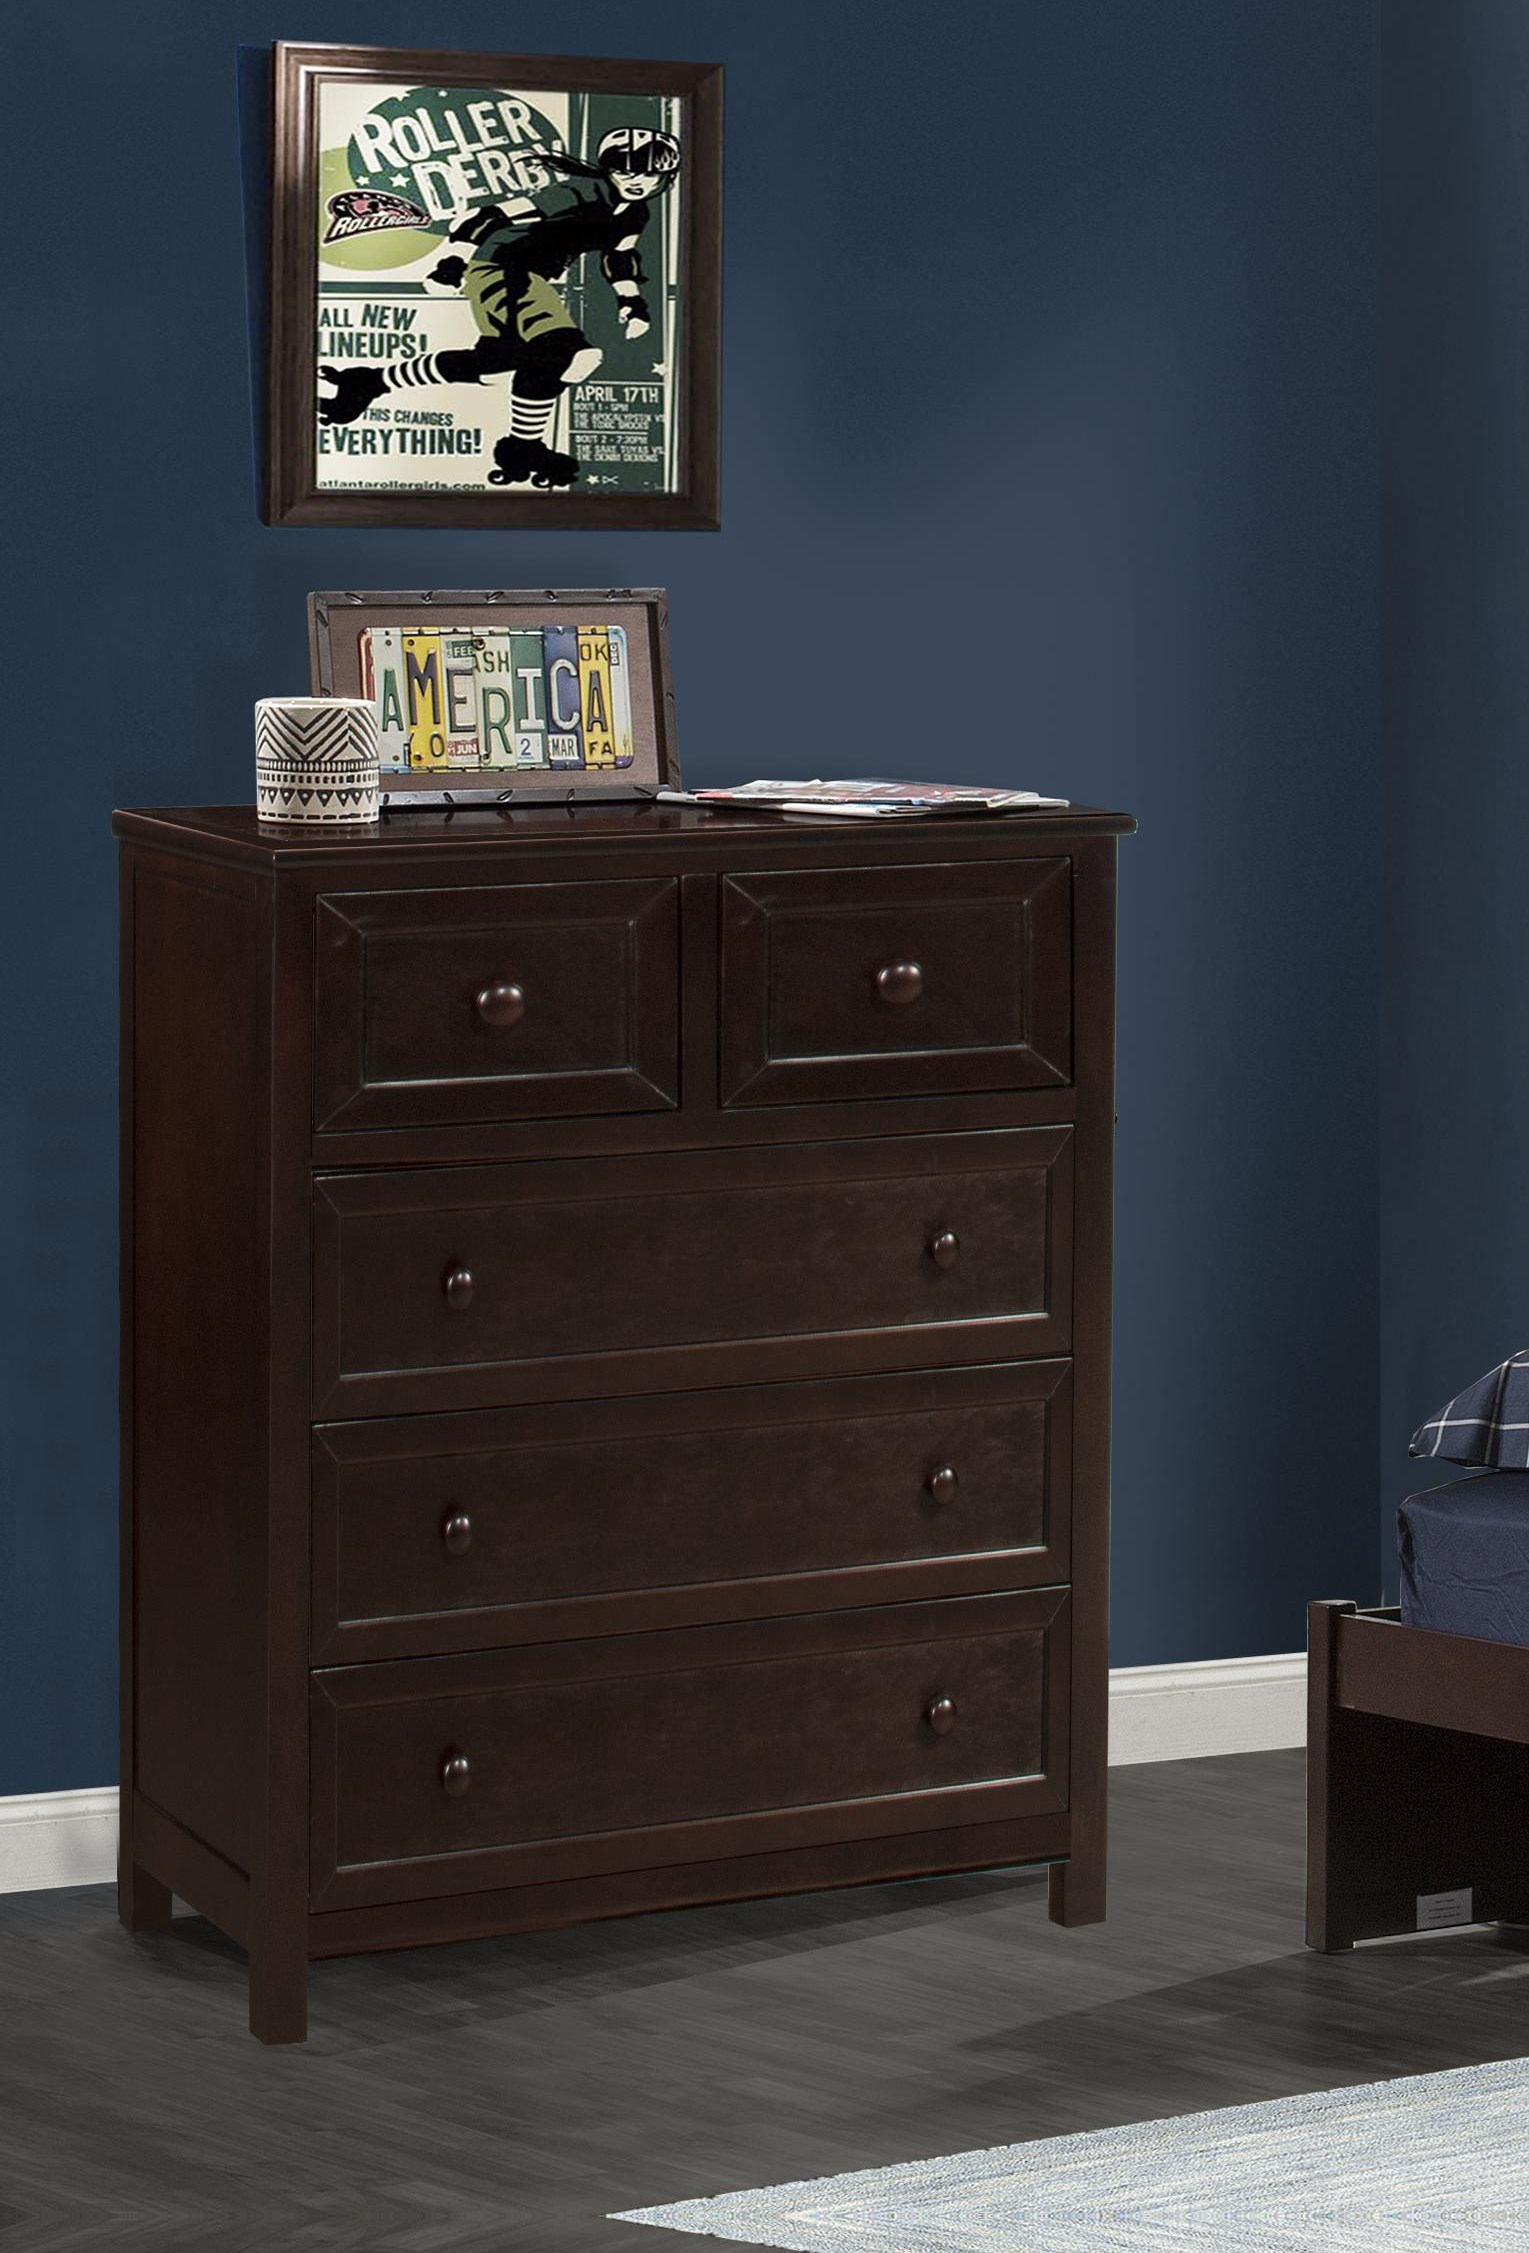 Schoolhouse 4.0 4 Drawer Chest at Ruby Gordon Home